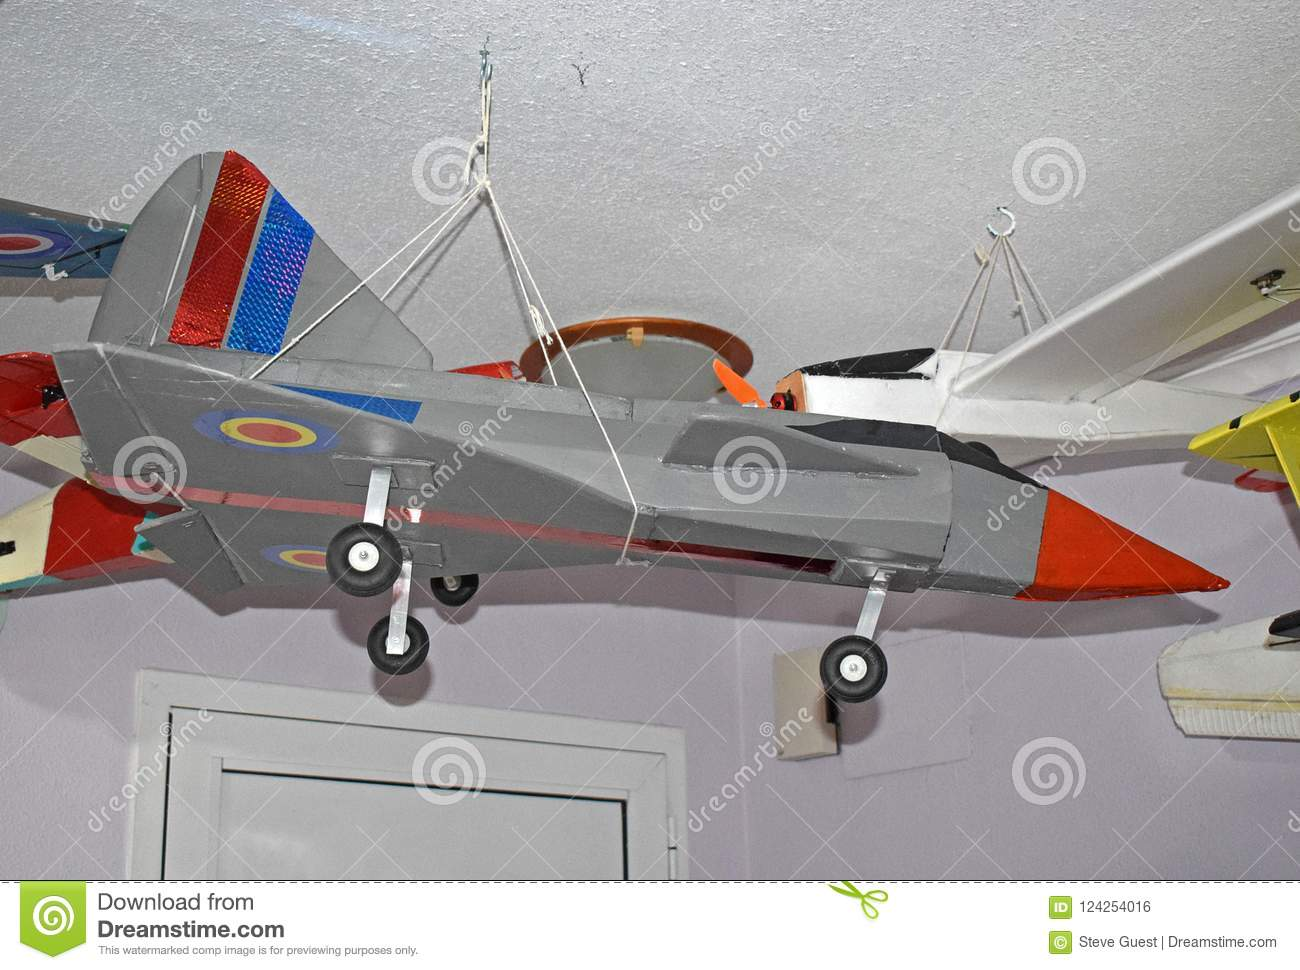 Jet RC Foam Aircraft Construction  Stock Photo - Image of